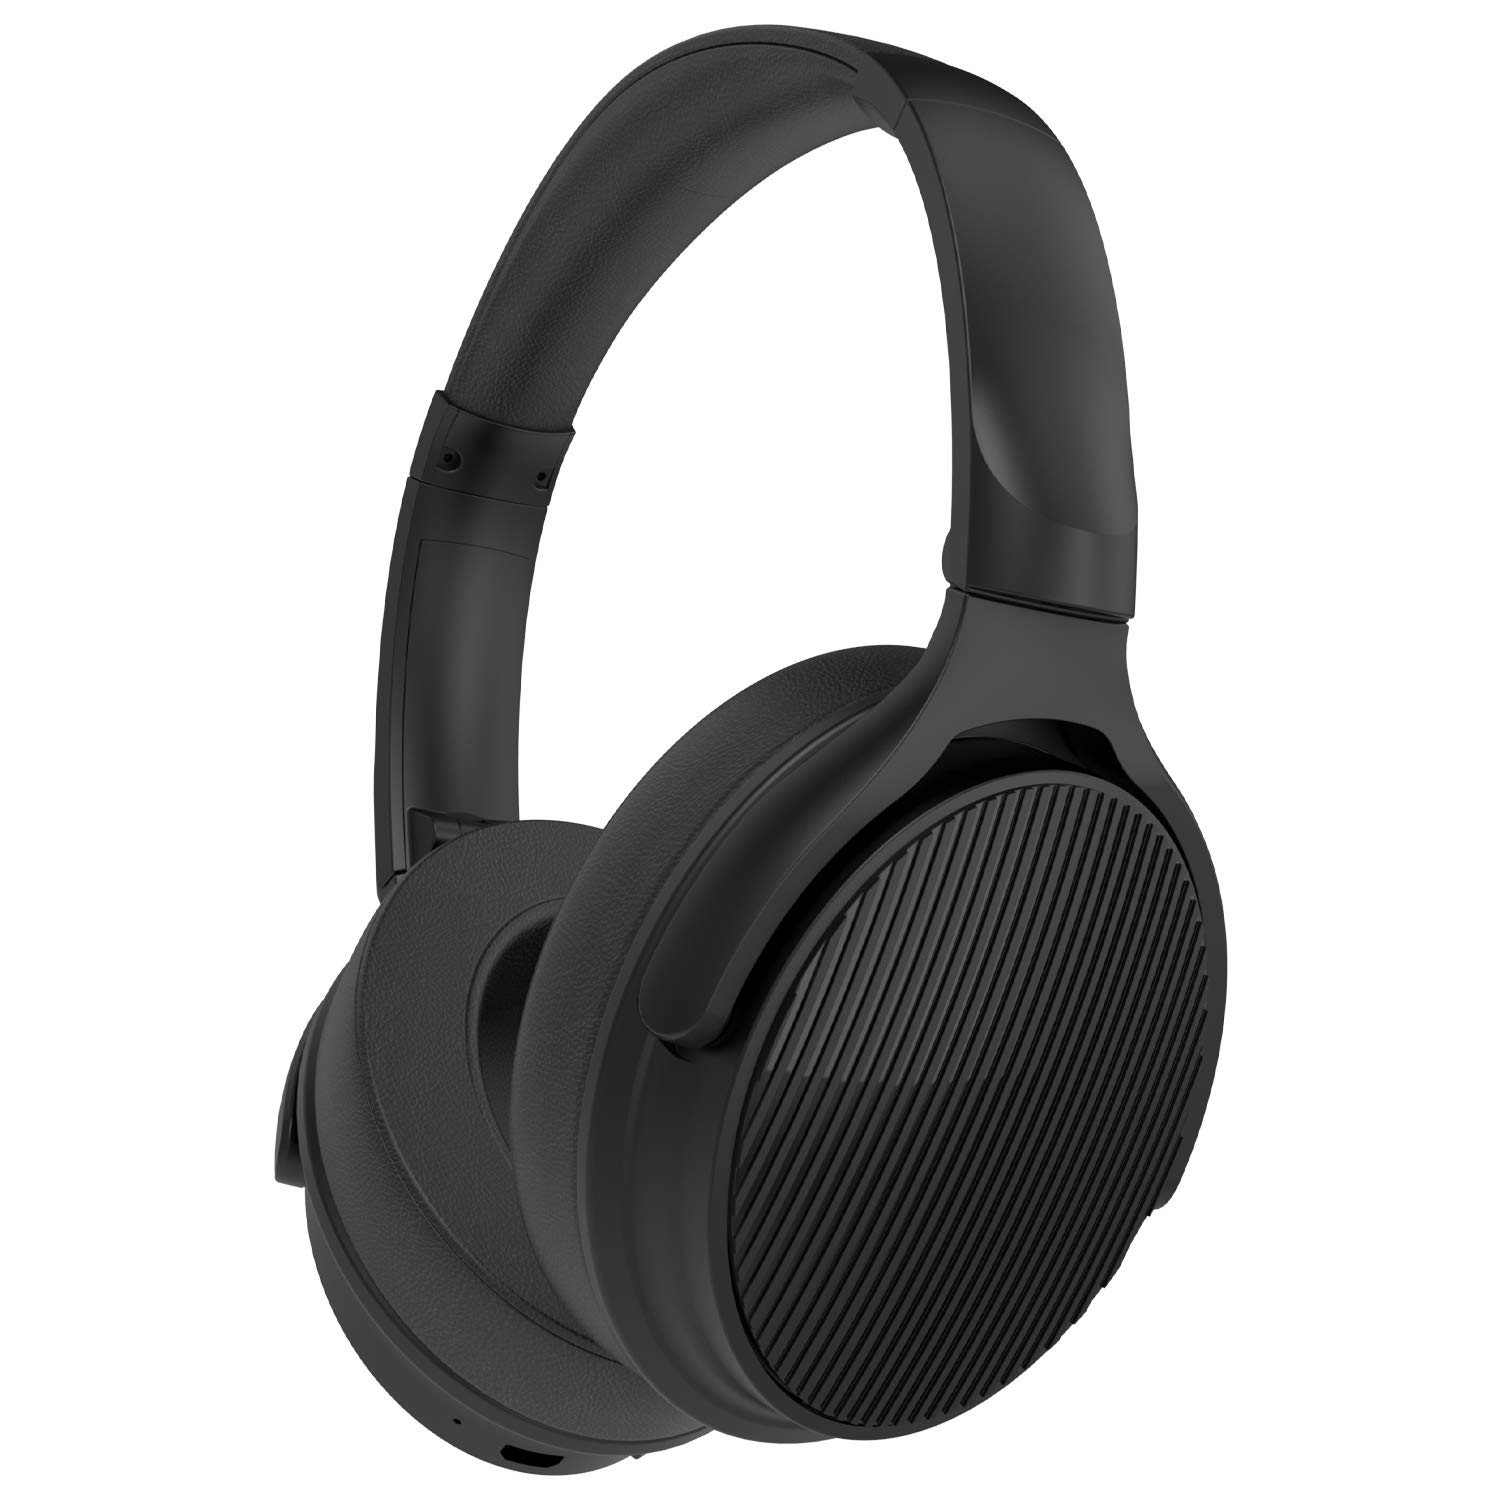 Betron EMR90 Wireless Bluetooth Headphones, Foldable, Over Ear, with Microphone, Strong Bass Driven Sound. Light Weight, Comfortable Earpads